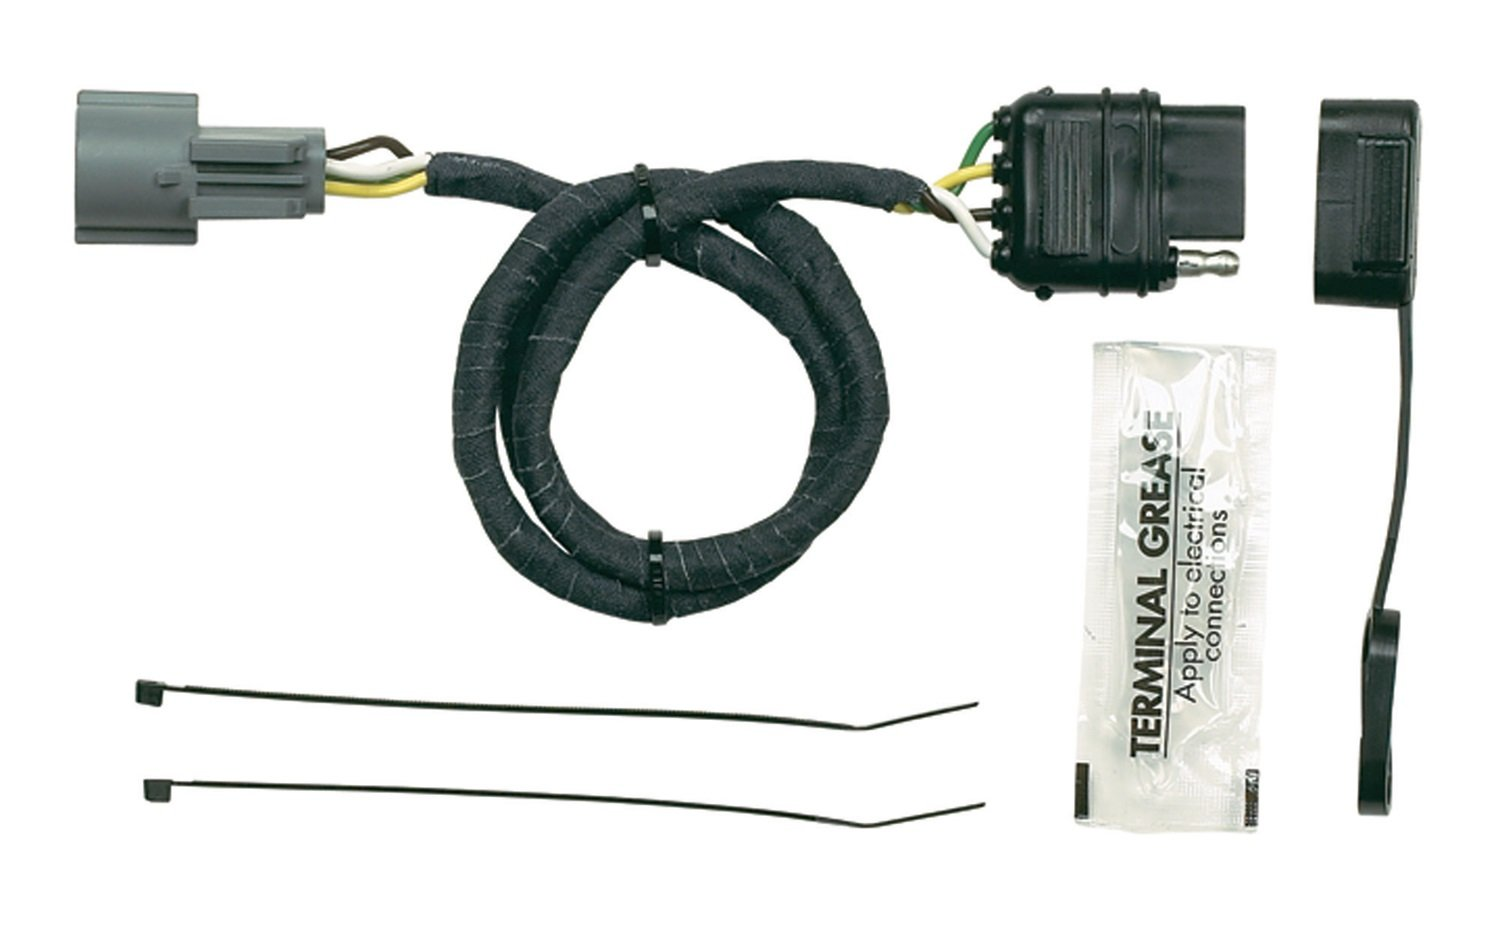 61jrmgZKFDL._SL1500_ amazon com hopkins 11140455 vehicle to trailer wiring kit automotive Trailer Light Wiring Kits at virtualis.co